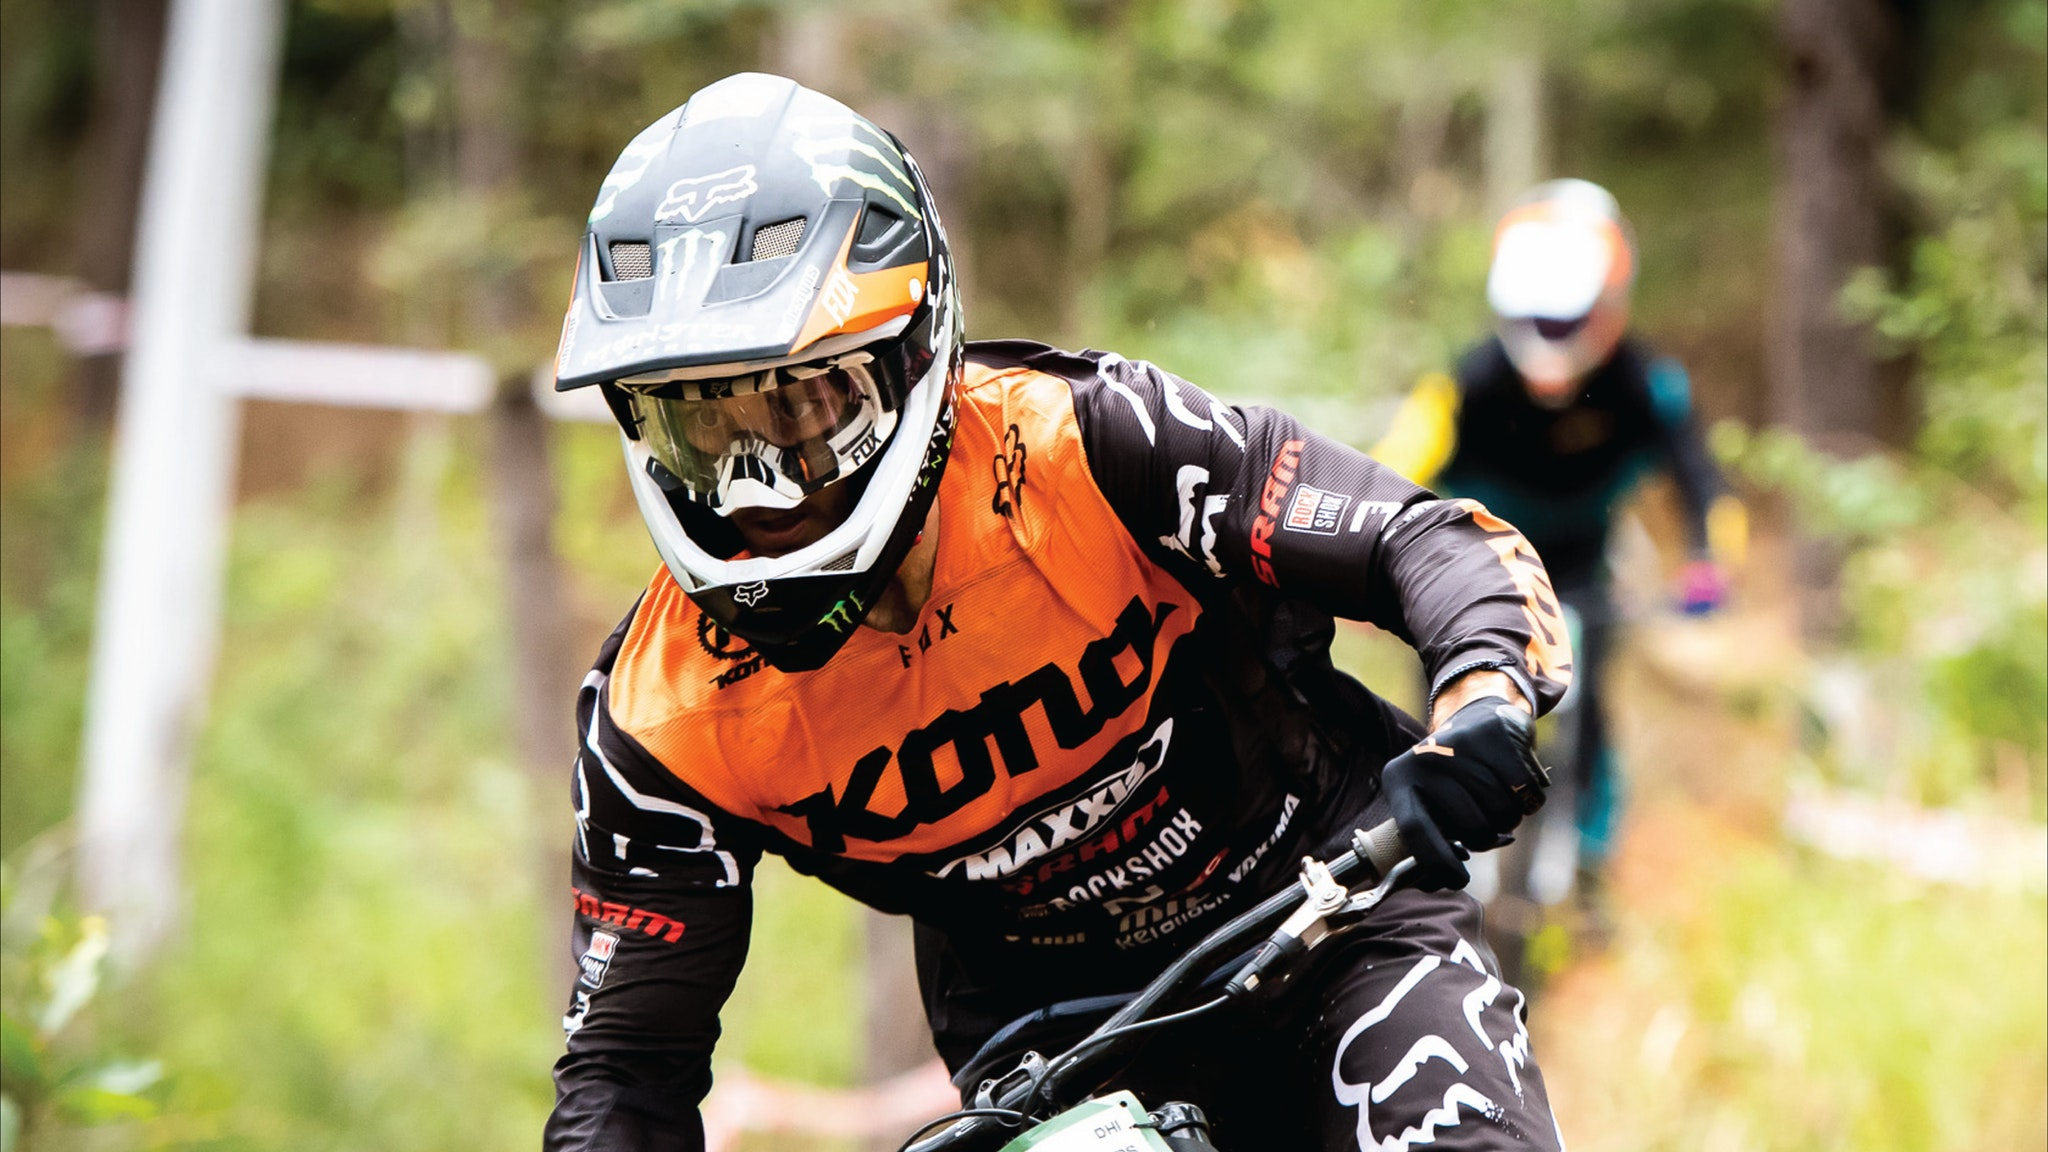 2018 Downhill National Series